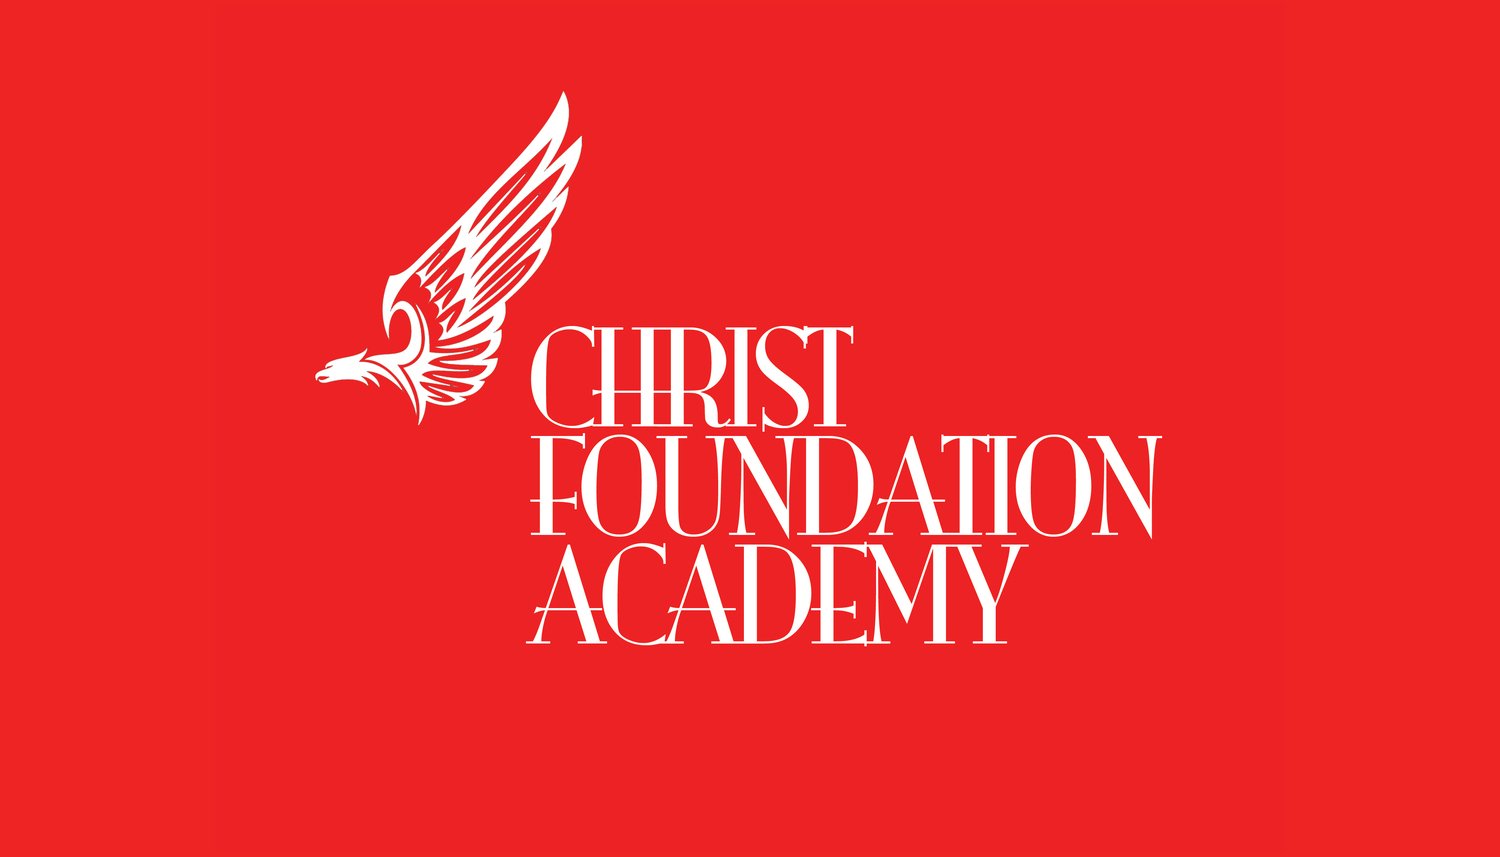 Christ Foundation Academy